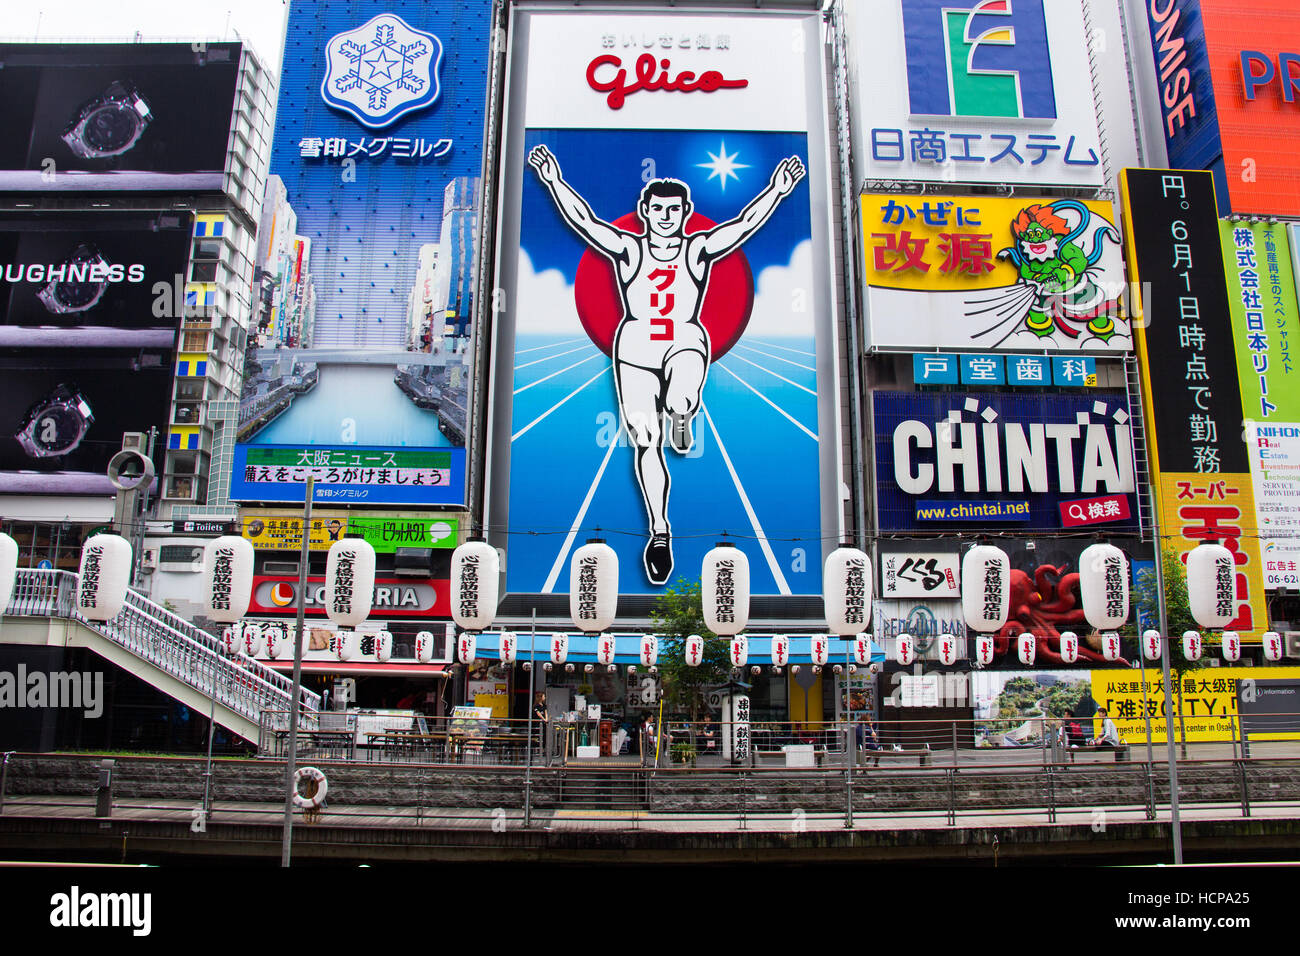 Glico Running Man, Osaka, Japon Photo Stock